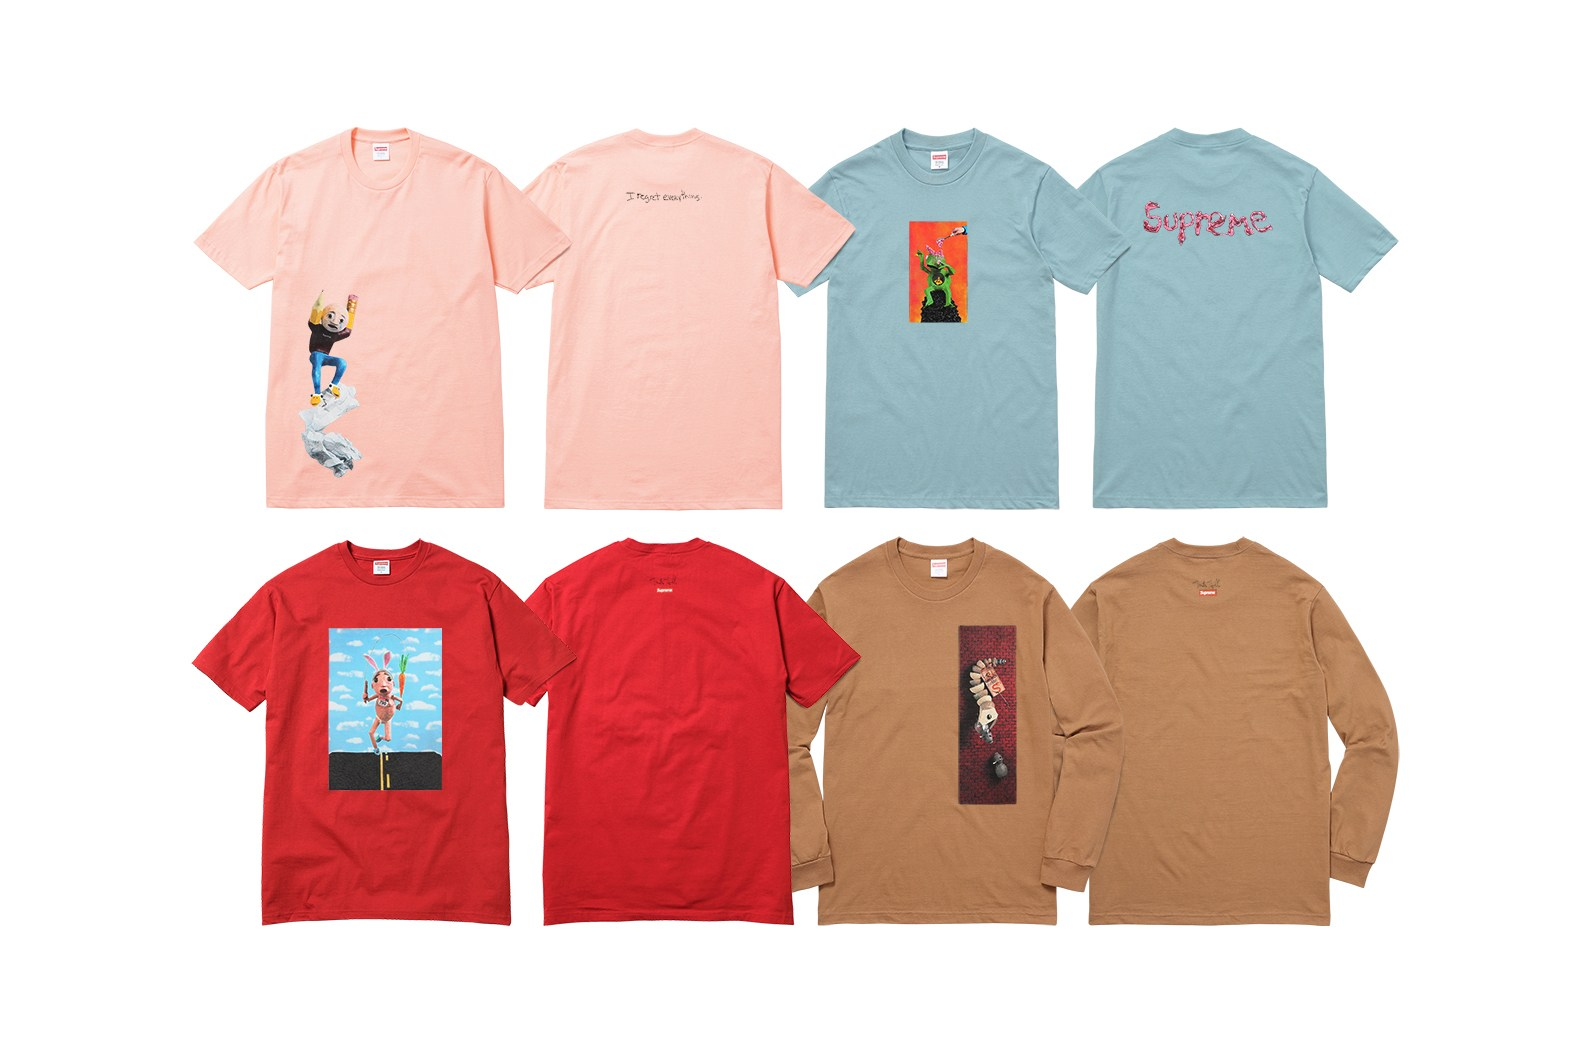 mike-hill-supreme-skate-decks-t-shirts-4 (1)